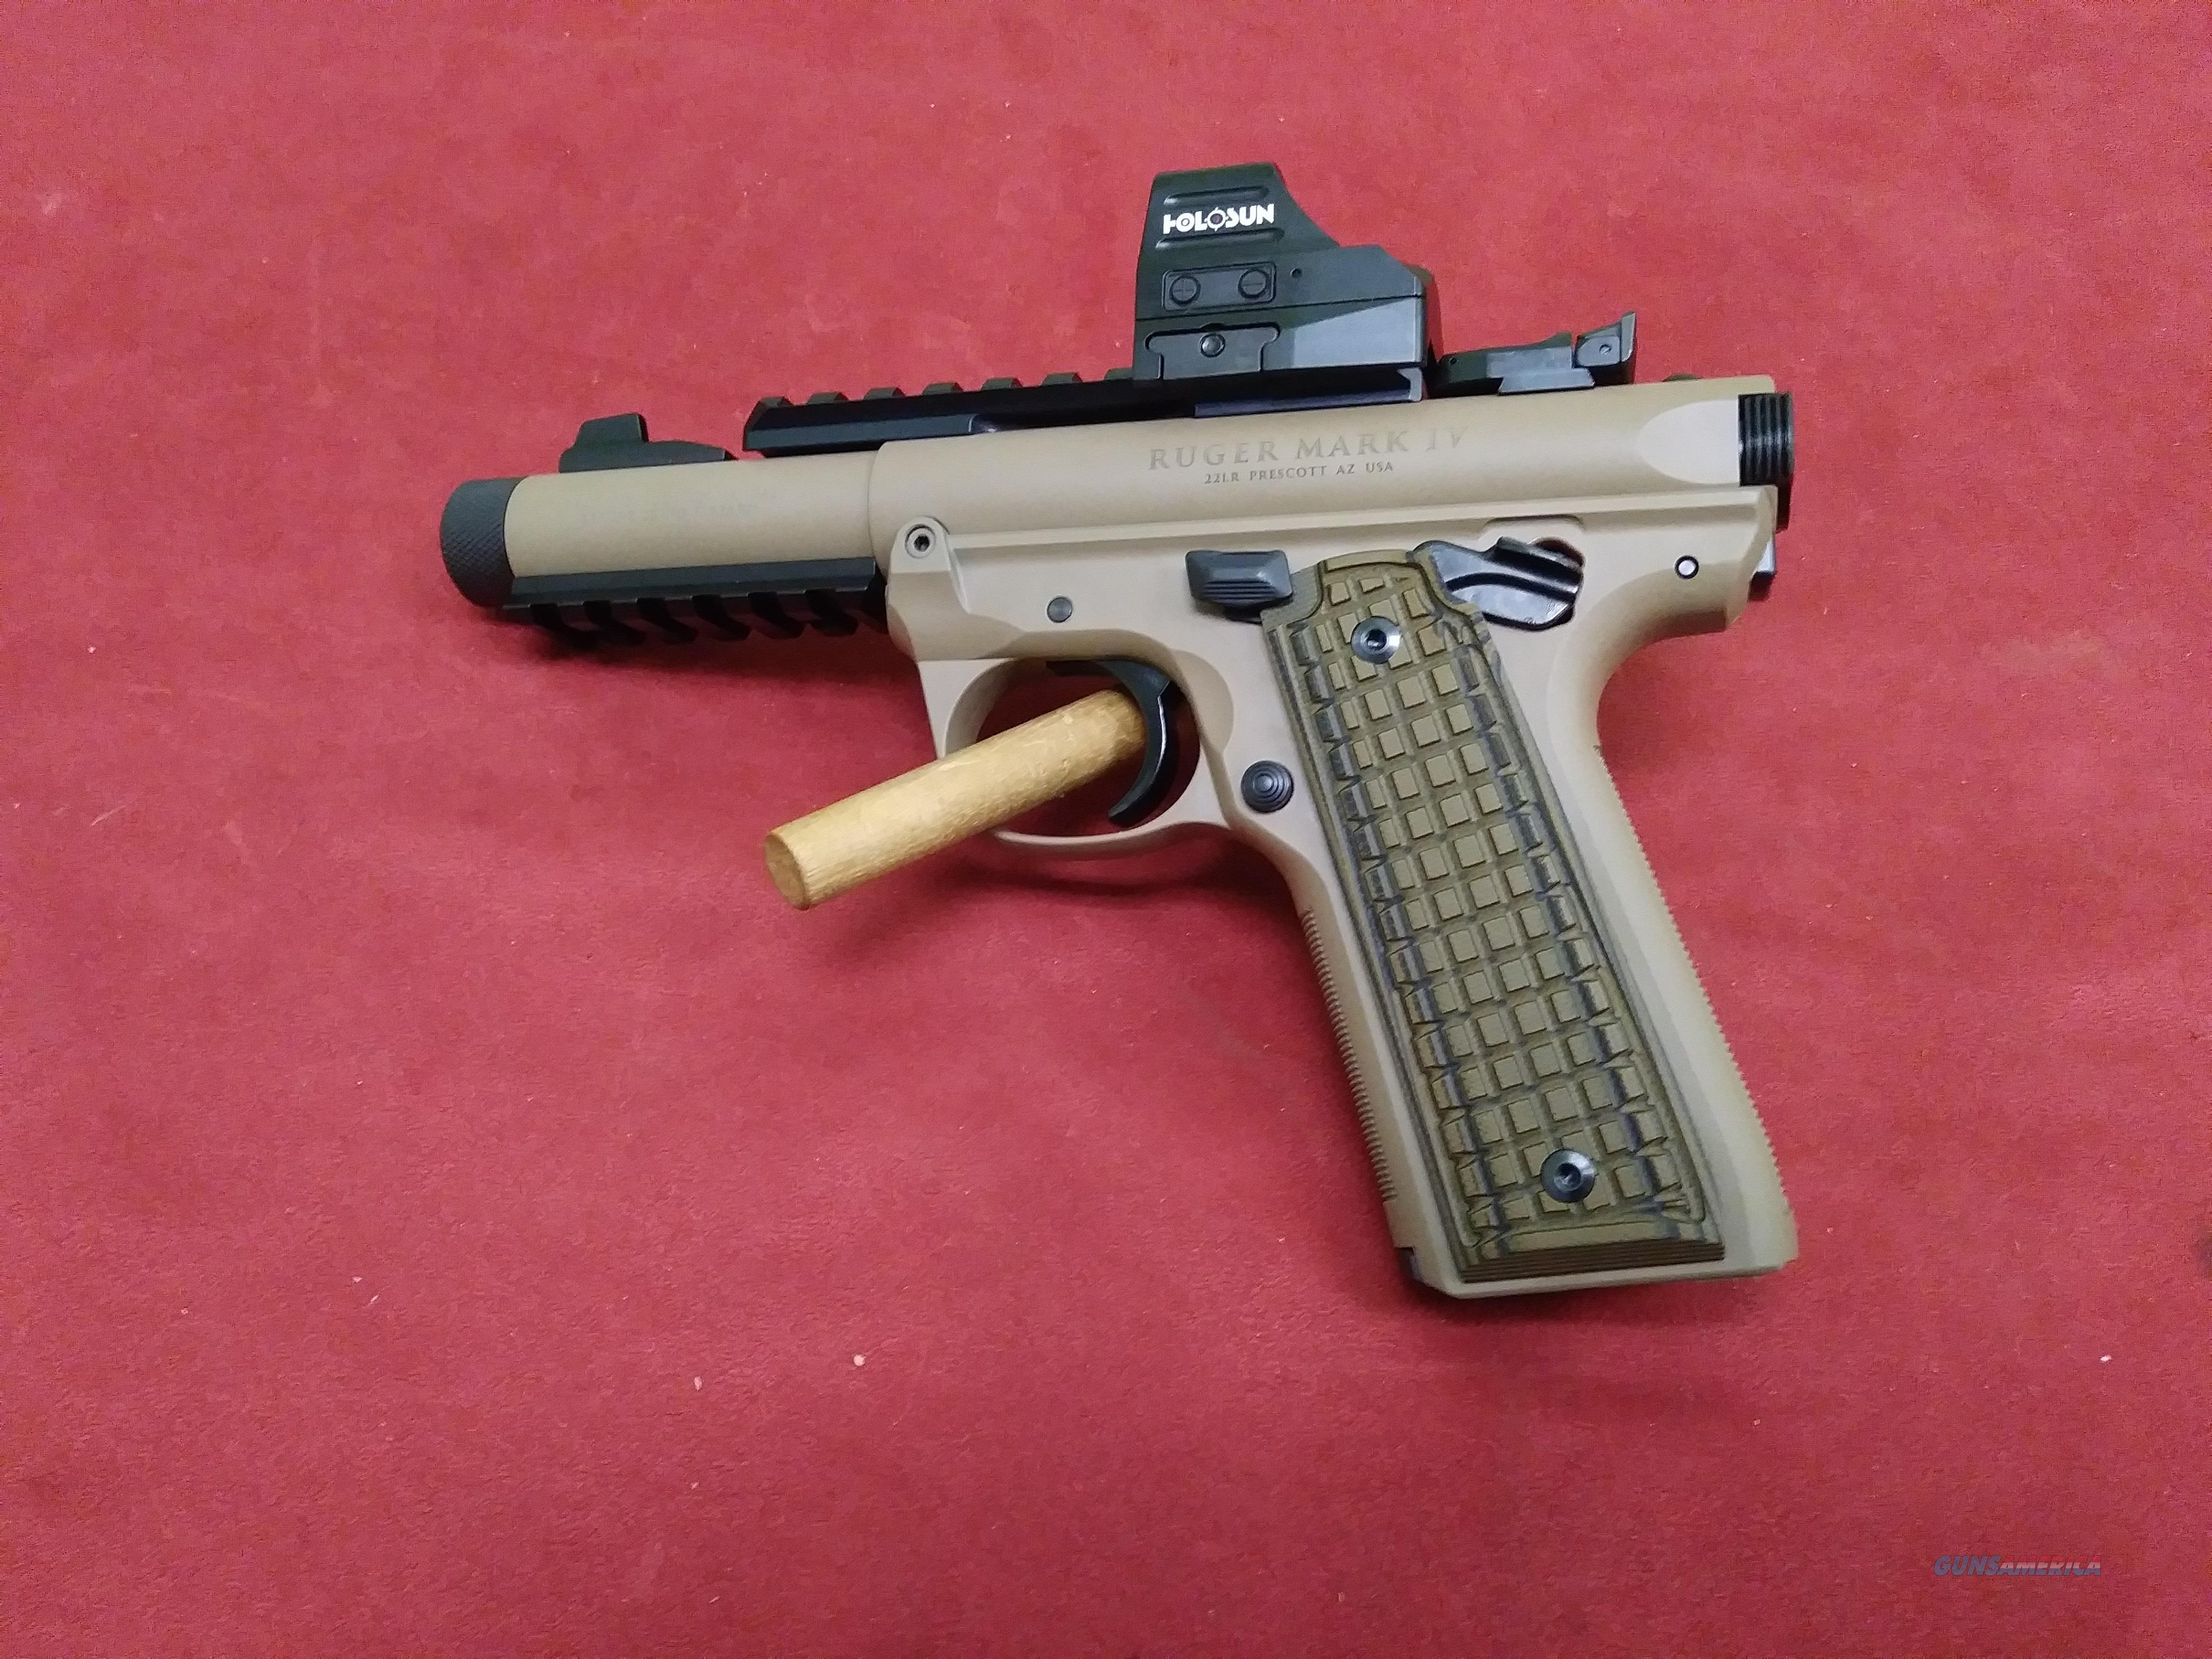 Ruger Mk IV 22/45 Tactical, FDE W/Holosun HS507C Red Dot   Guns > Pistols > Ruger Semi-Auto Pistols > Mark I/II/III/IV Family